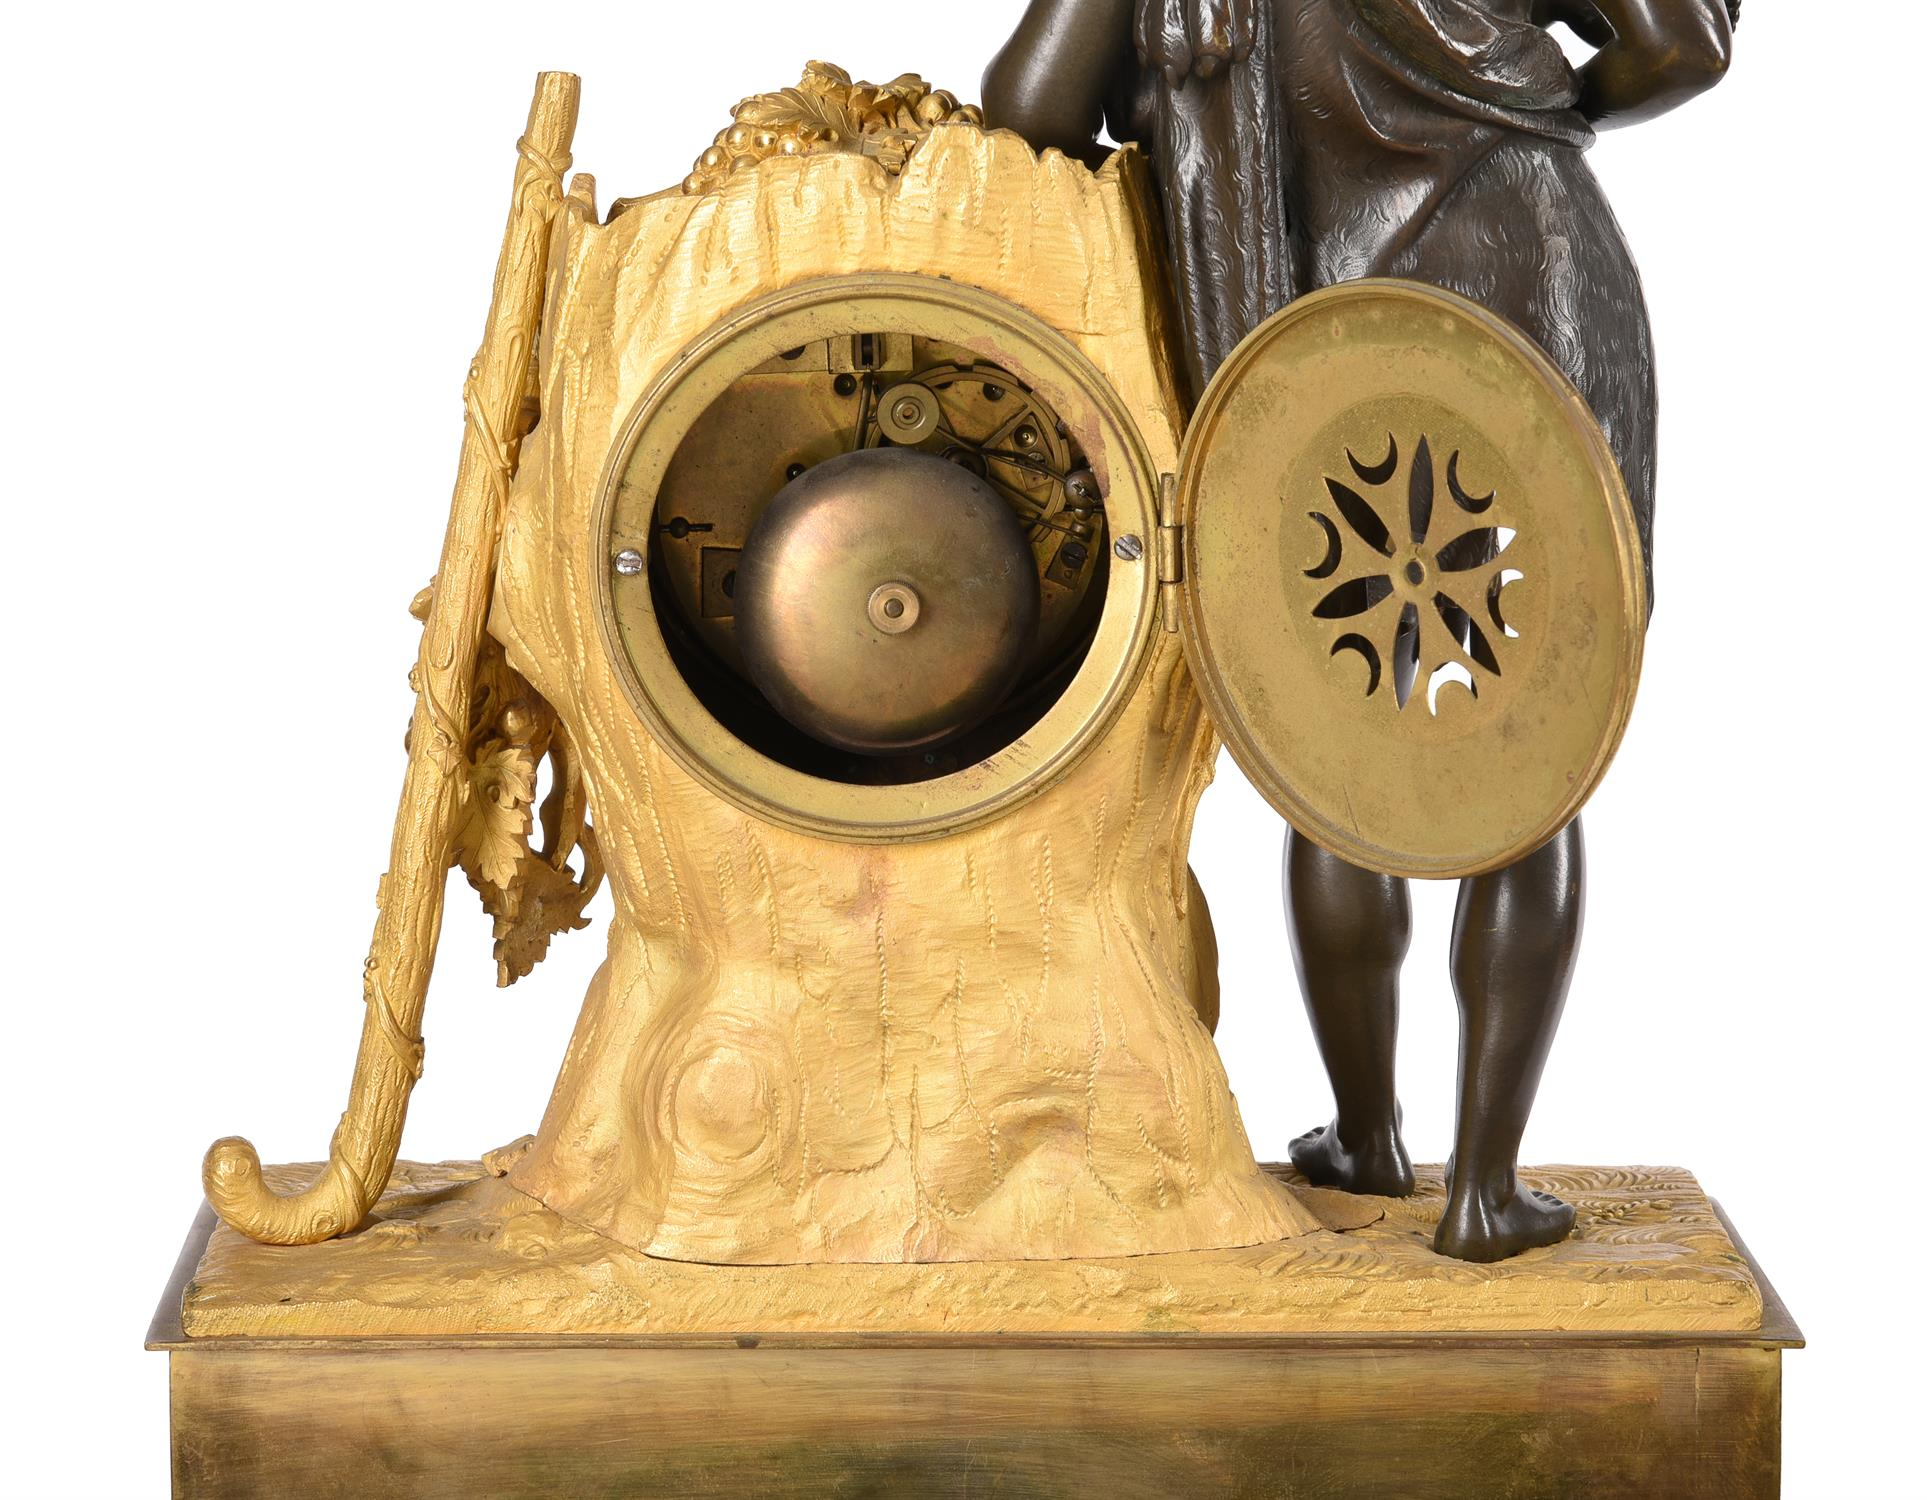 A French Empire Ormolu and patinated bronze figural mantel clock - Image 2 of 2